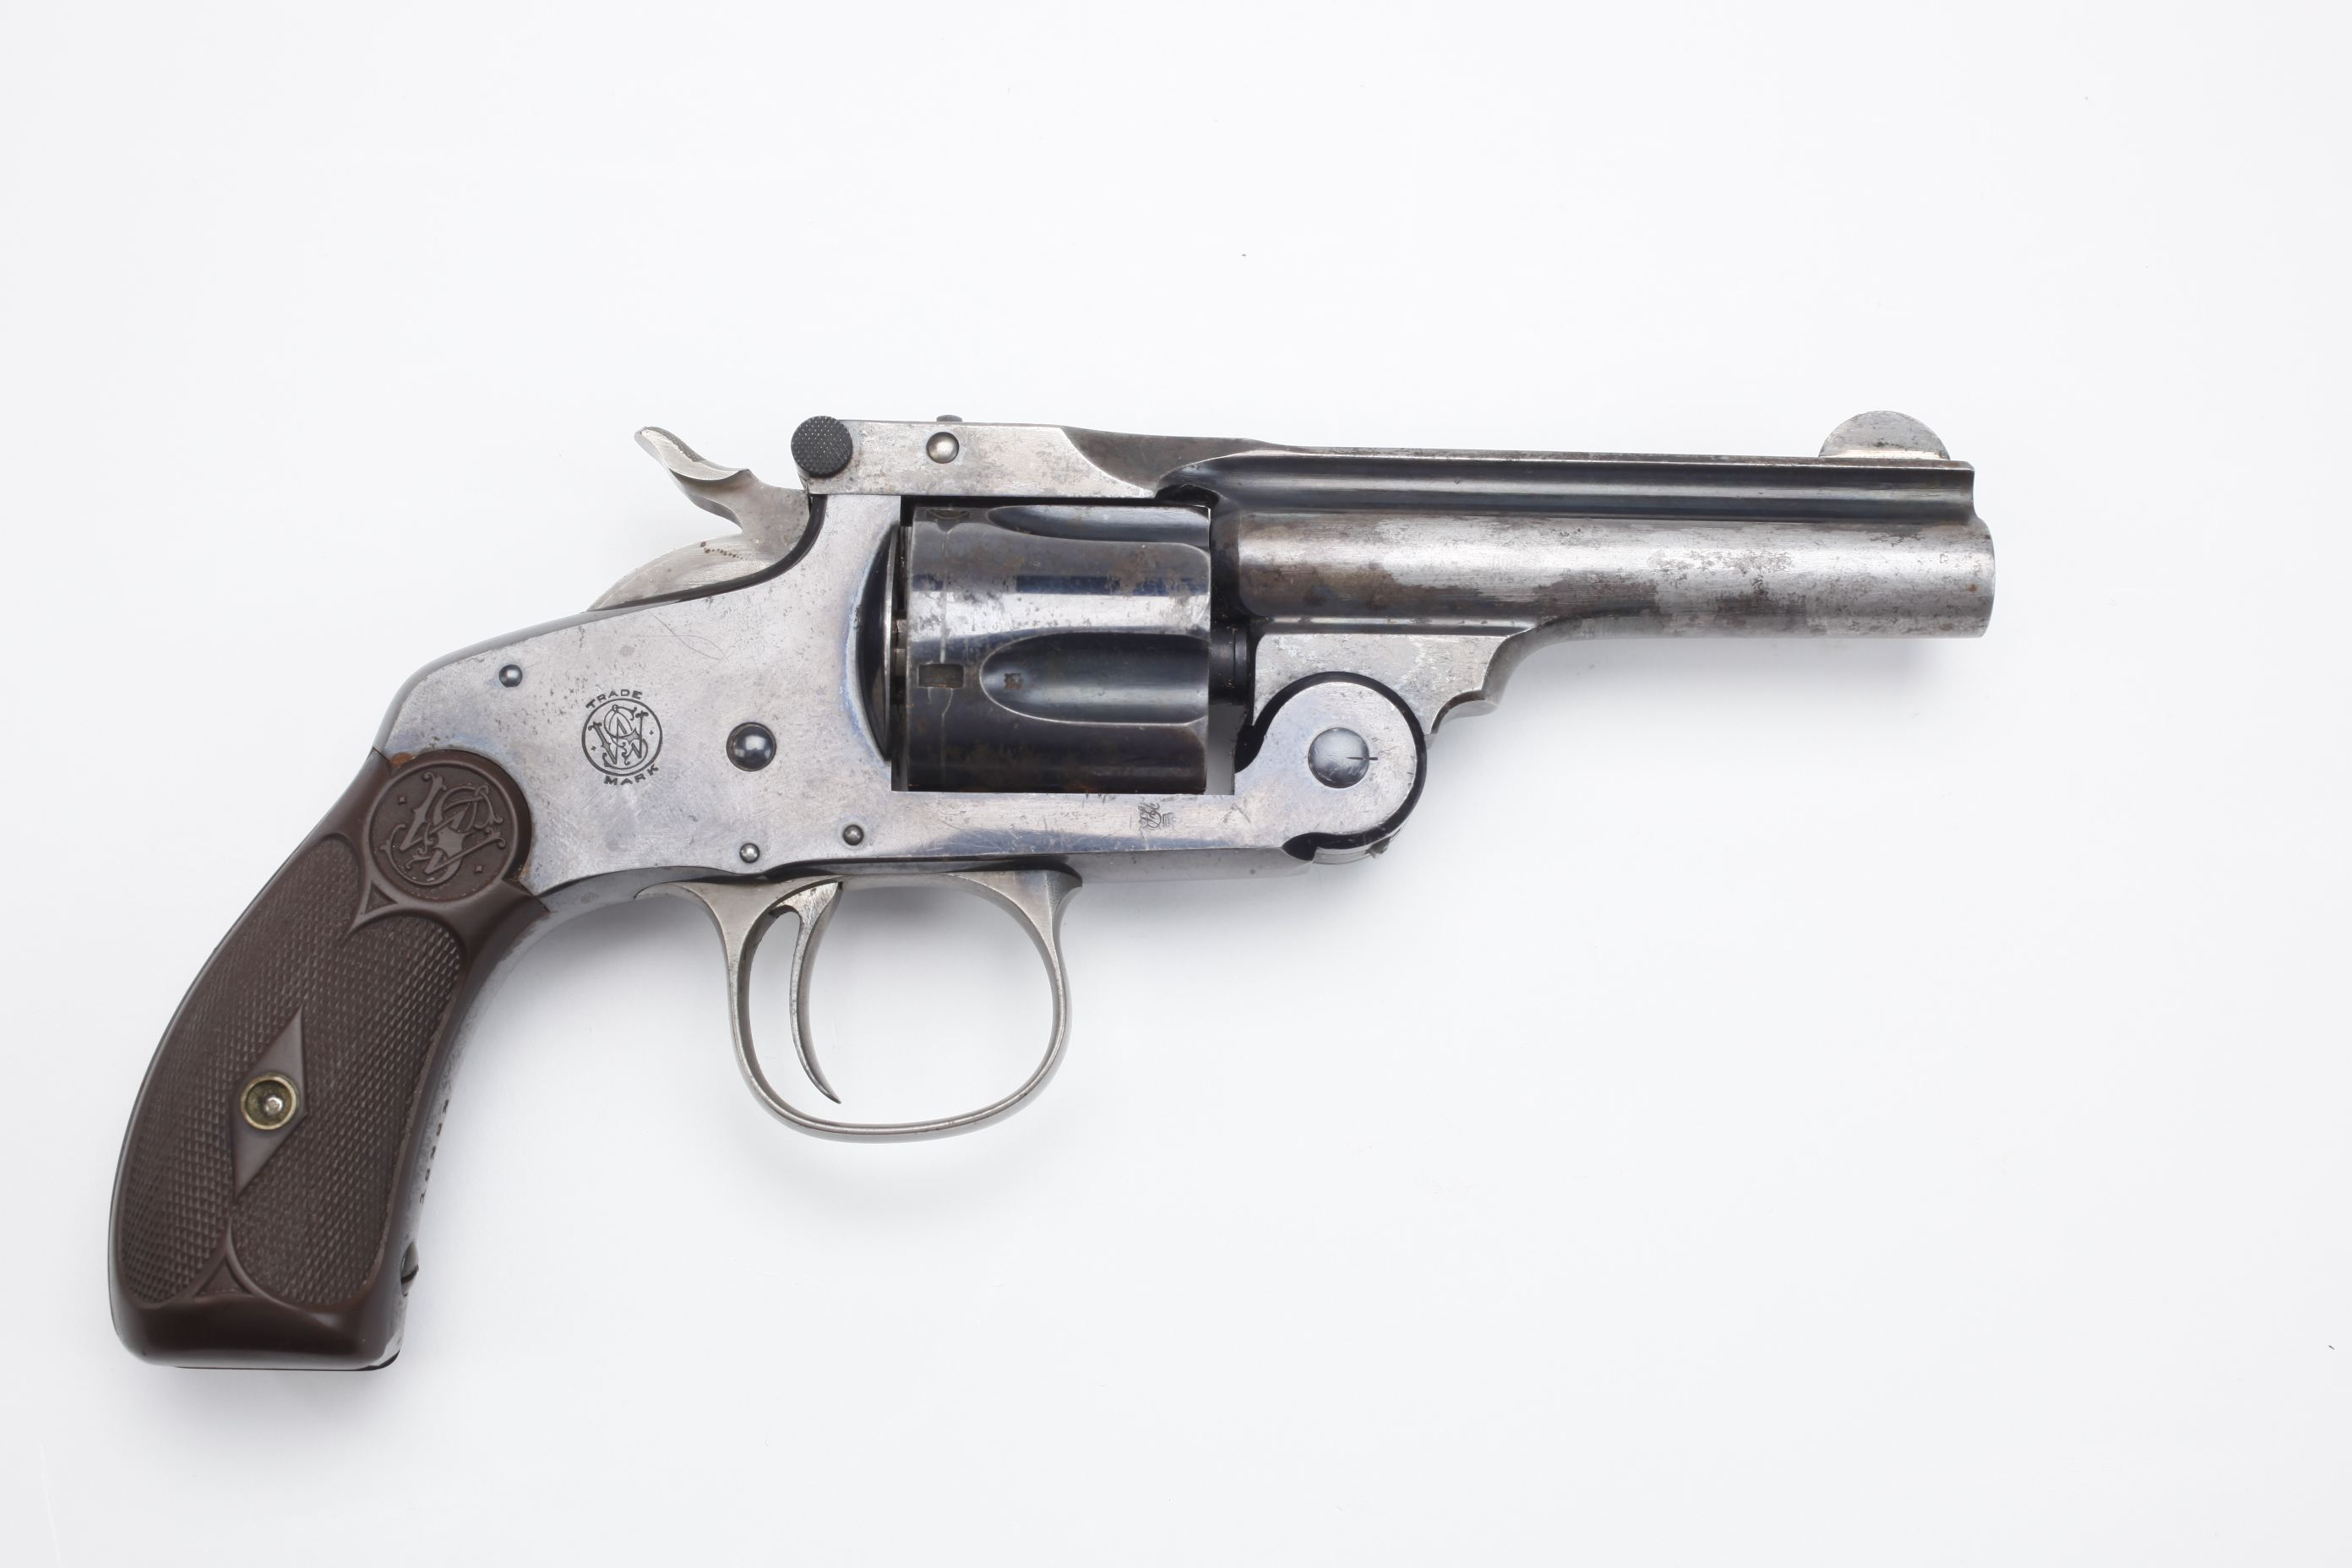 Smith & Wesson 38 Single Action Third Model Revolver